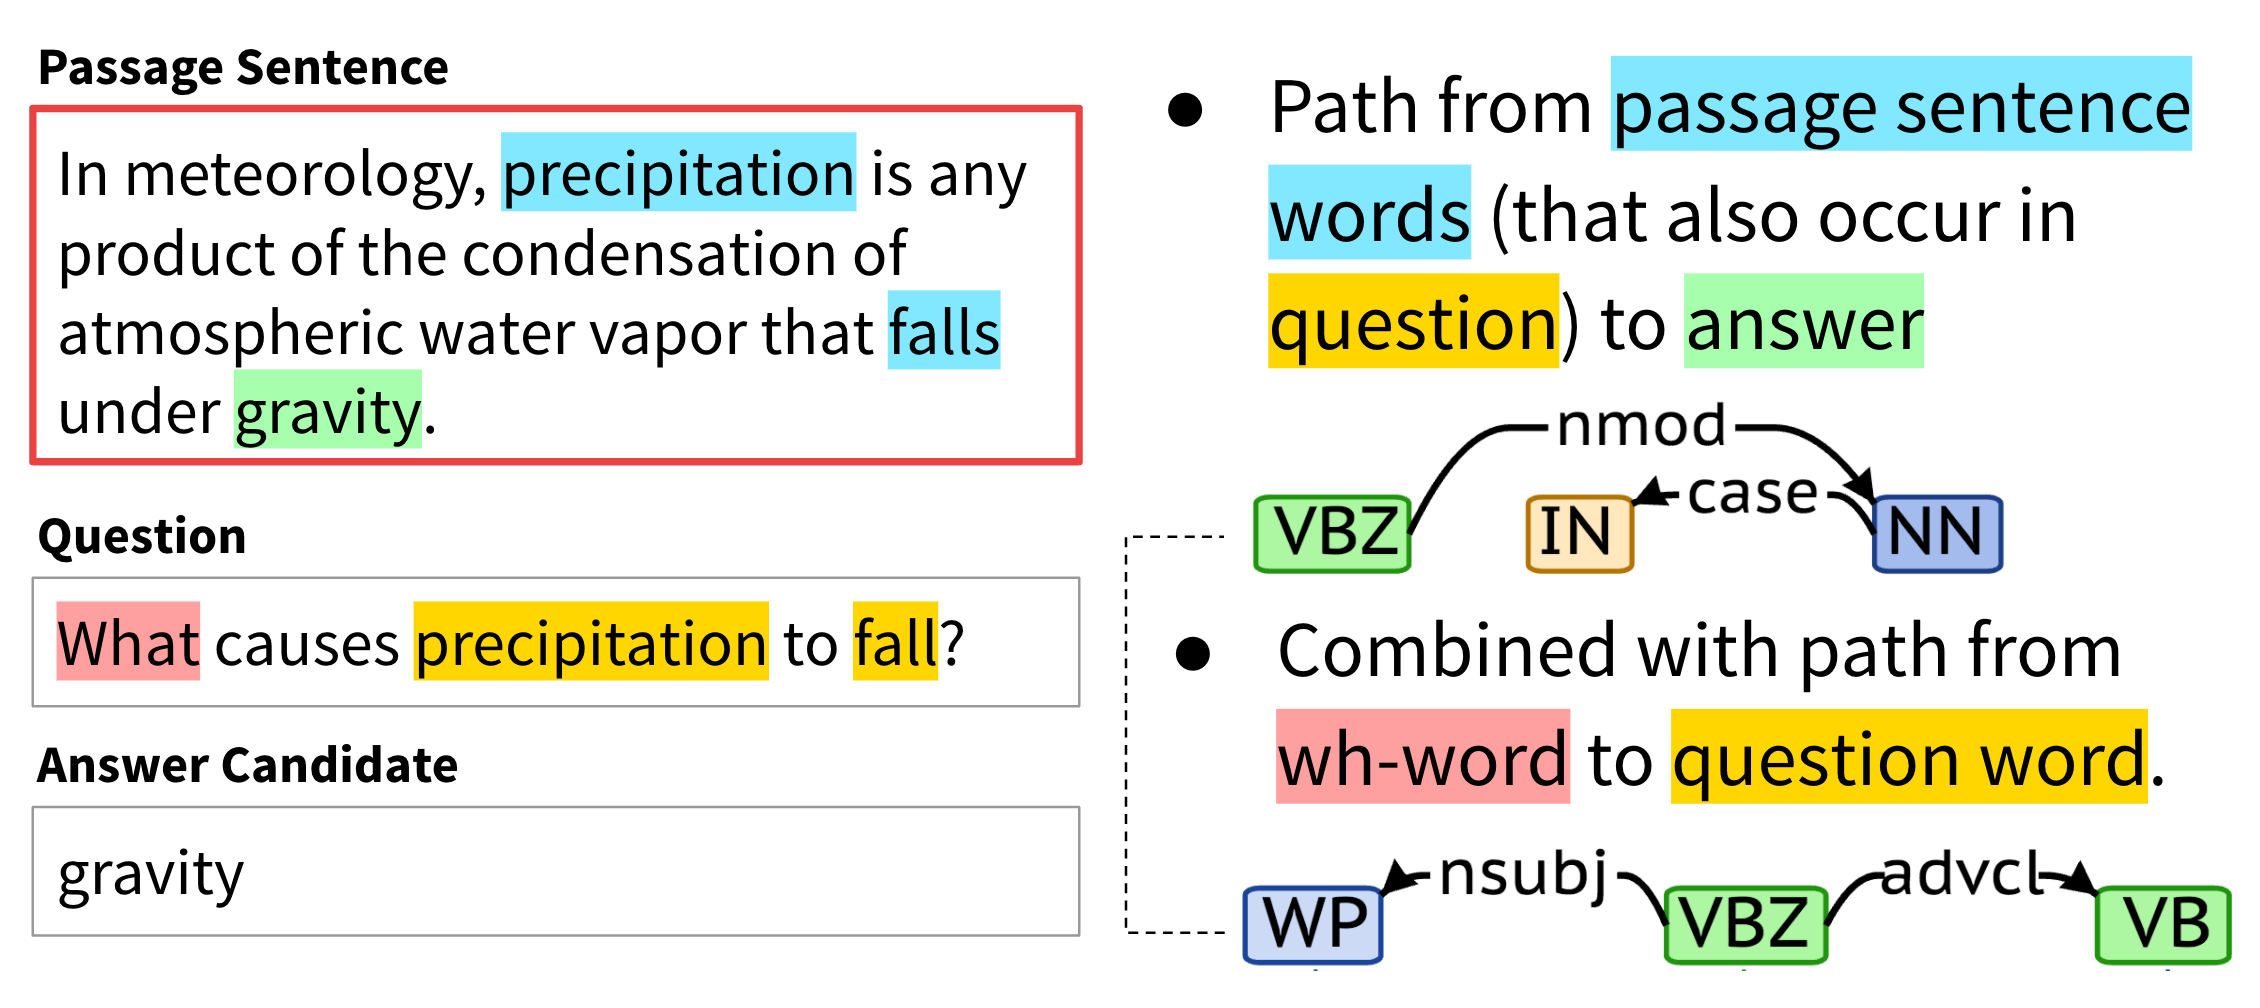 We use the dependency tree path from the passage sentence words that occur in the question to the answer in the passage. This is optionally combined with the path from the wh-word to the same question word.